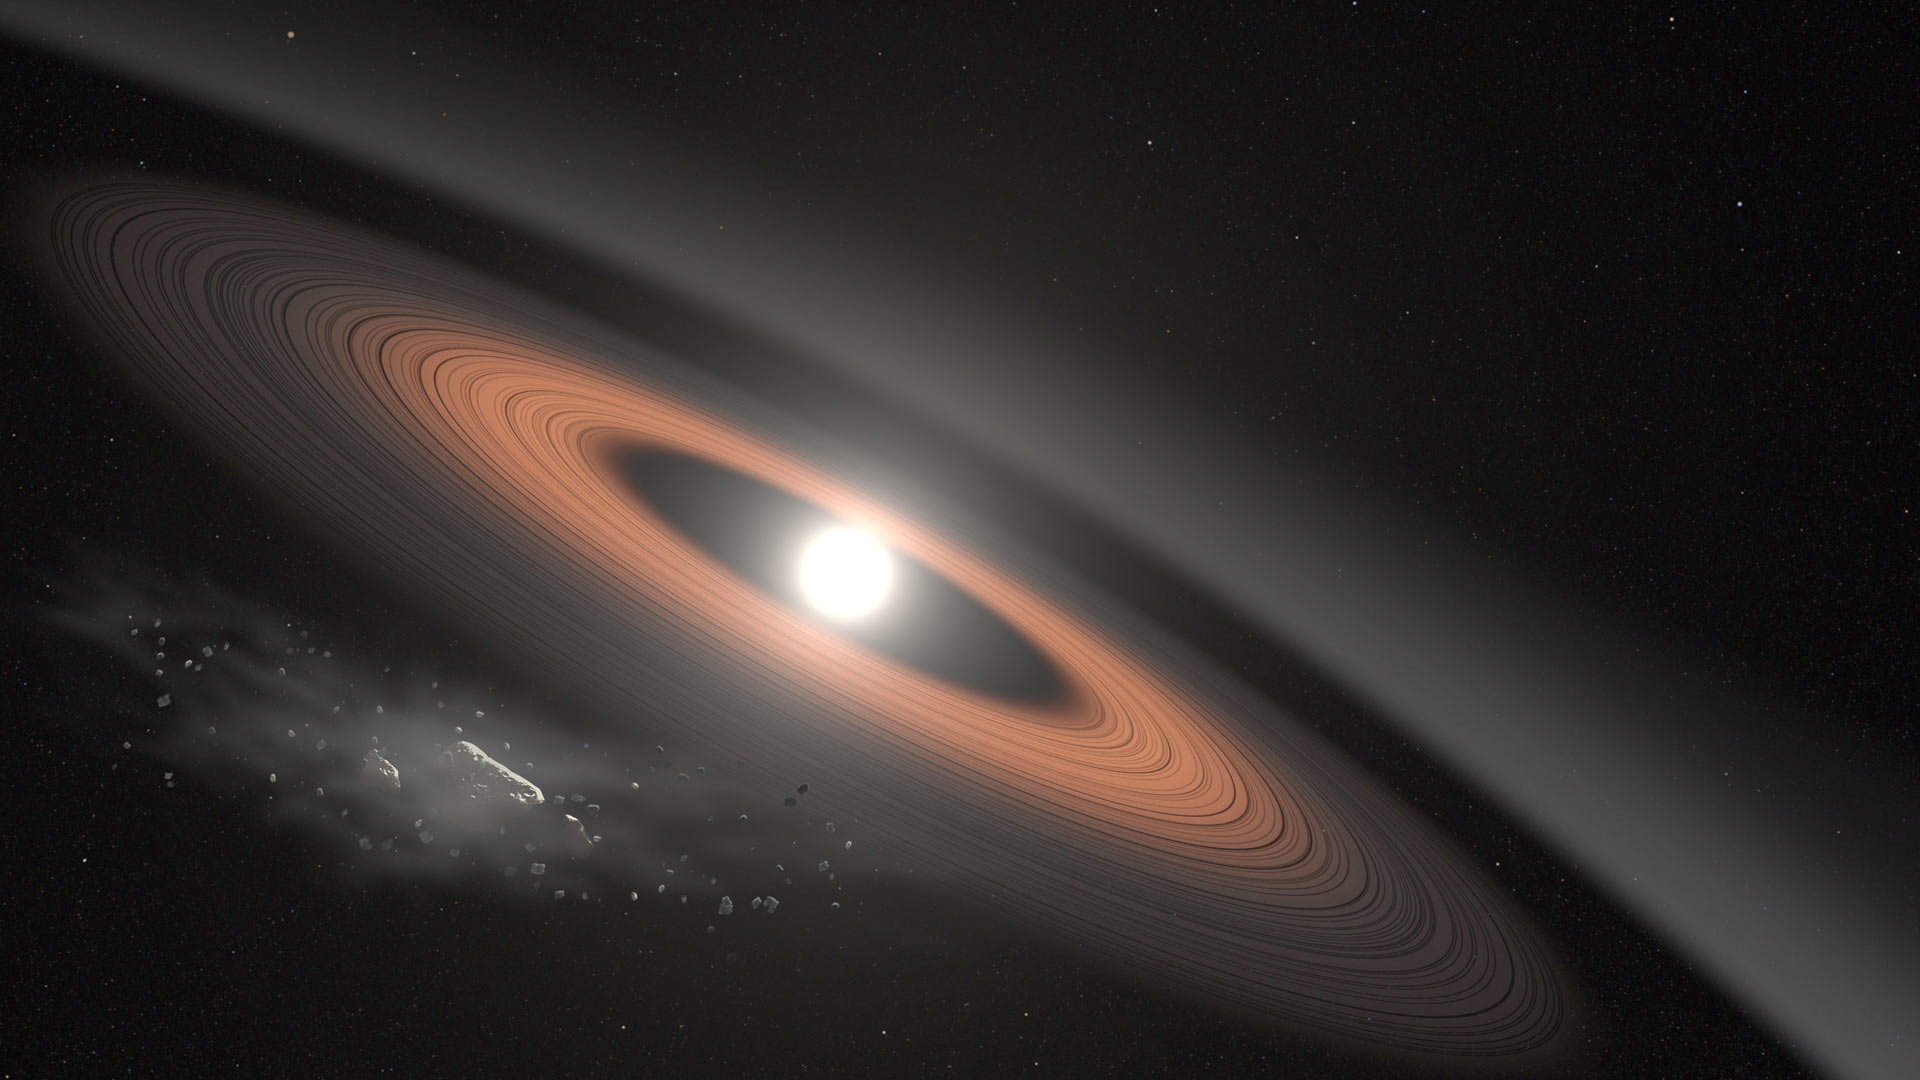 Citizen scientist finds ancient white dwarf star with enigmatic dust rings